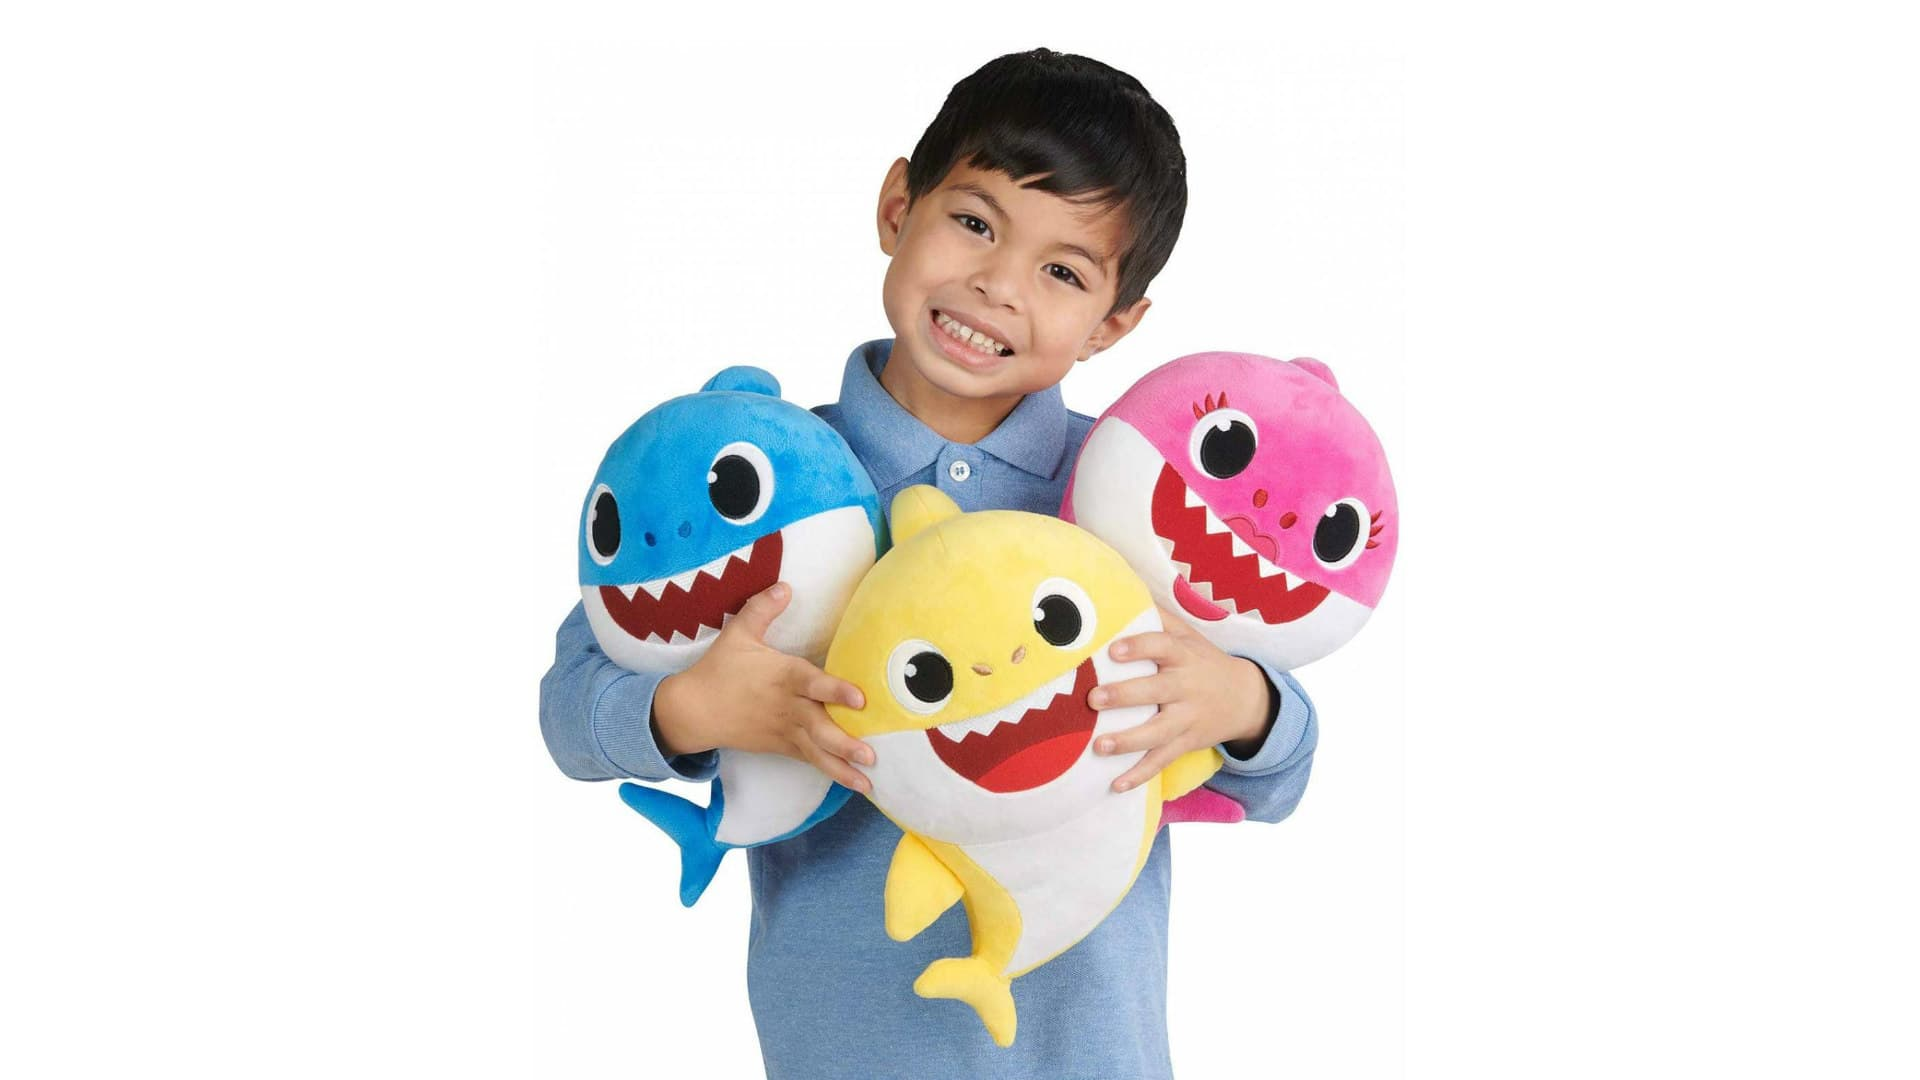 Soft plush Baby Shark dolls sing verses from the baby shark song.